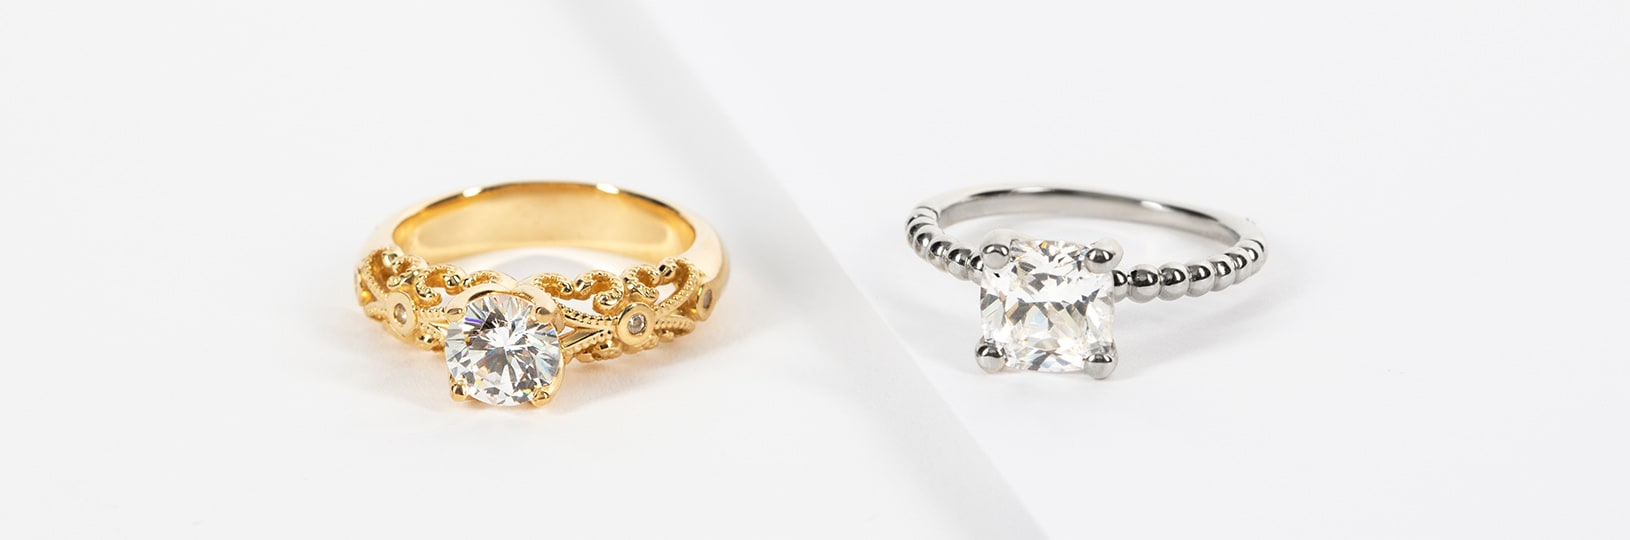 Two of the most popular metals, yellow and white gold both have their pros and cons